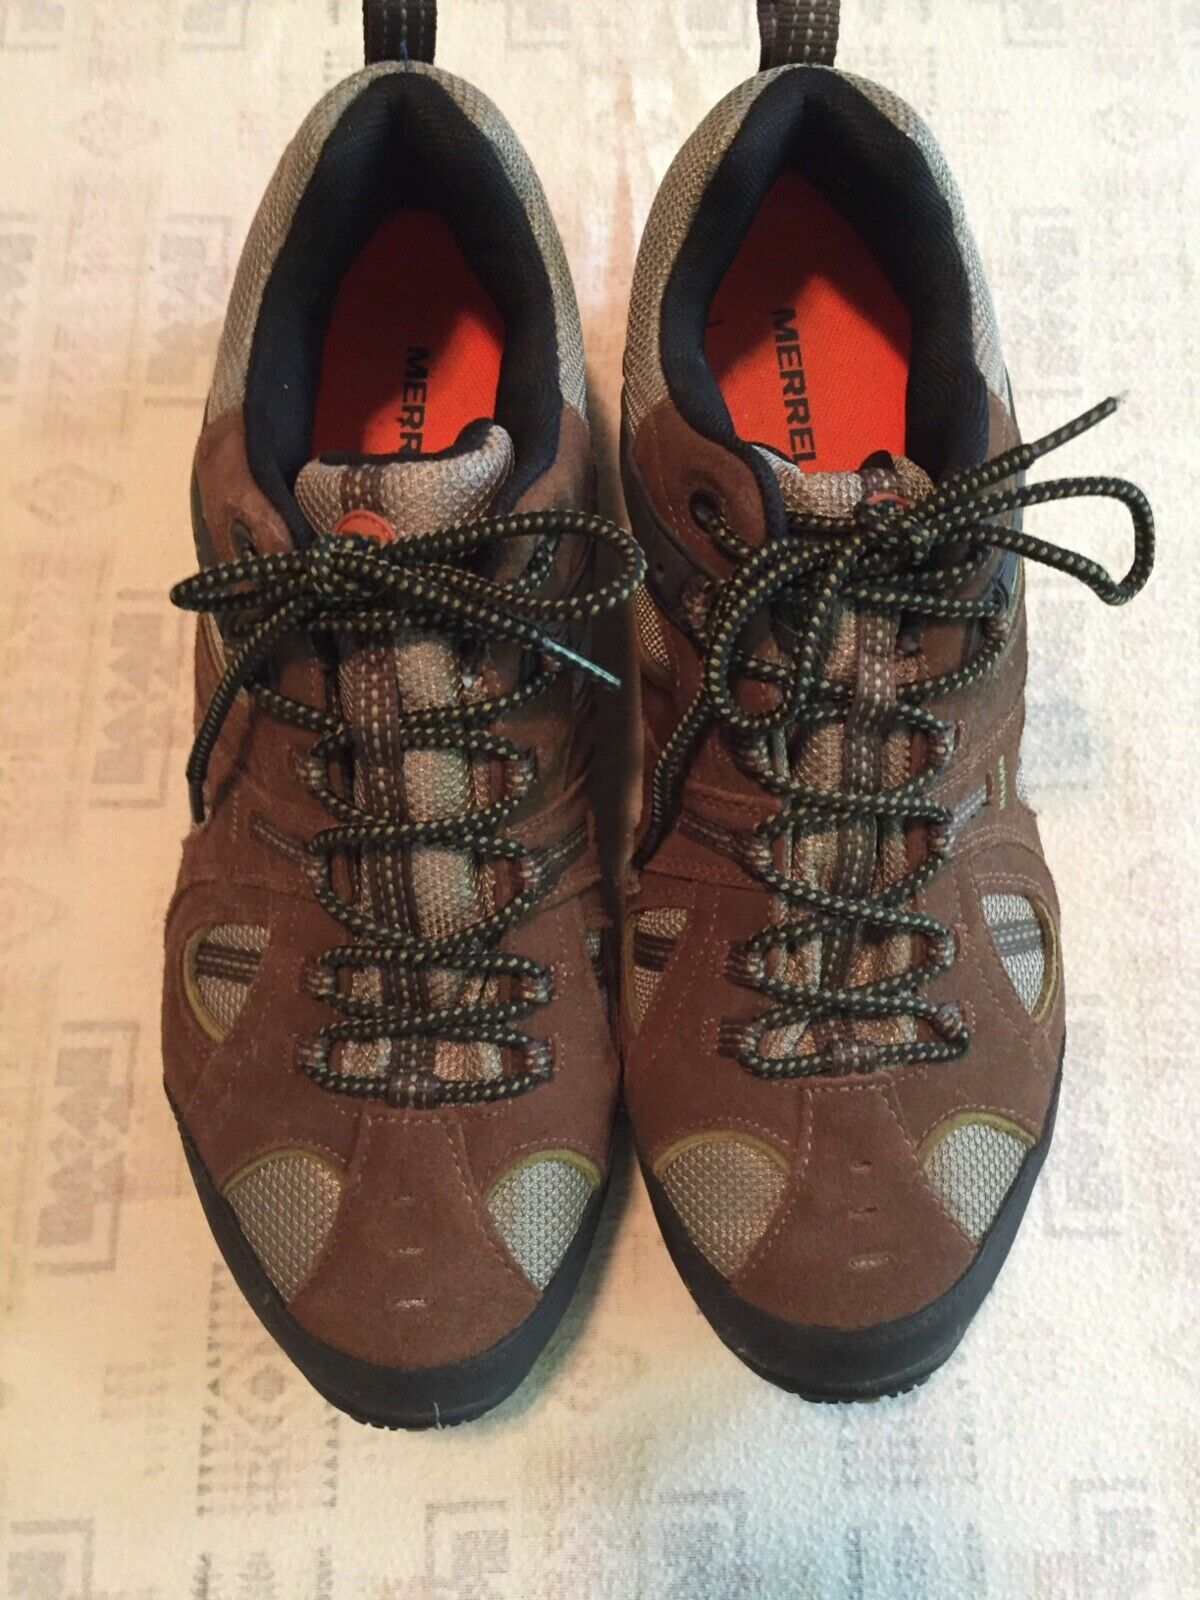 NEW Merrell hiking zapatos Mens 13 48 marrón gris negro walking MINT condition